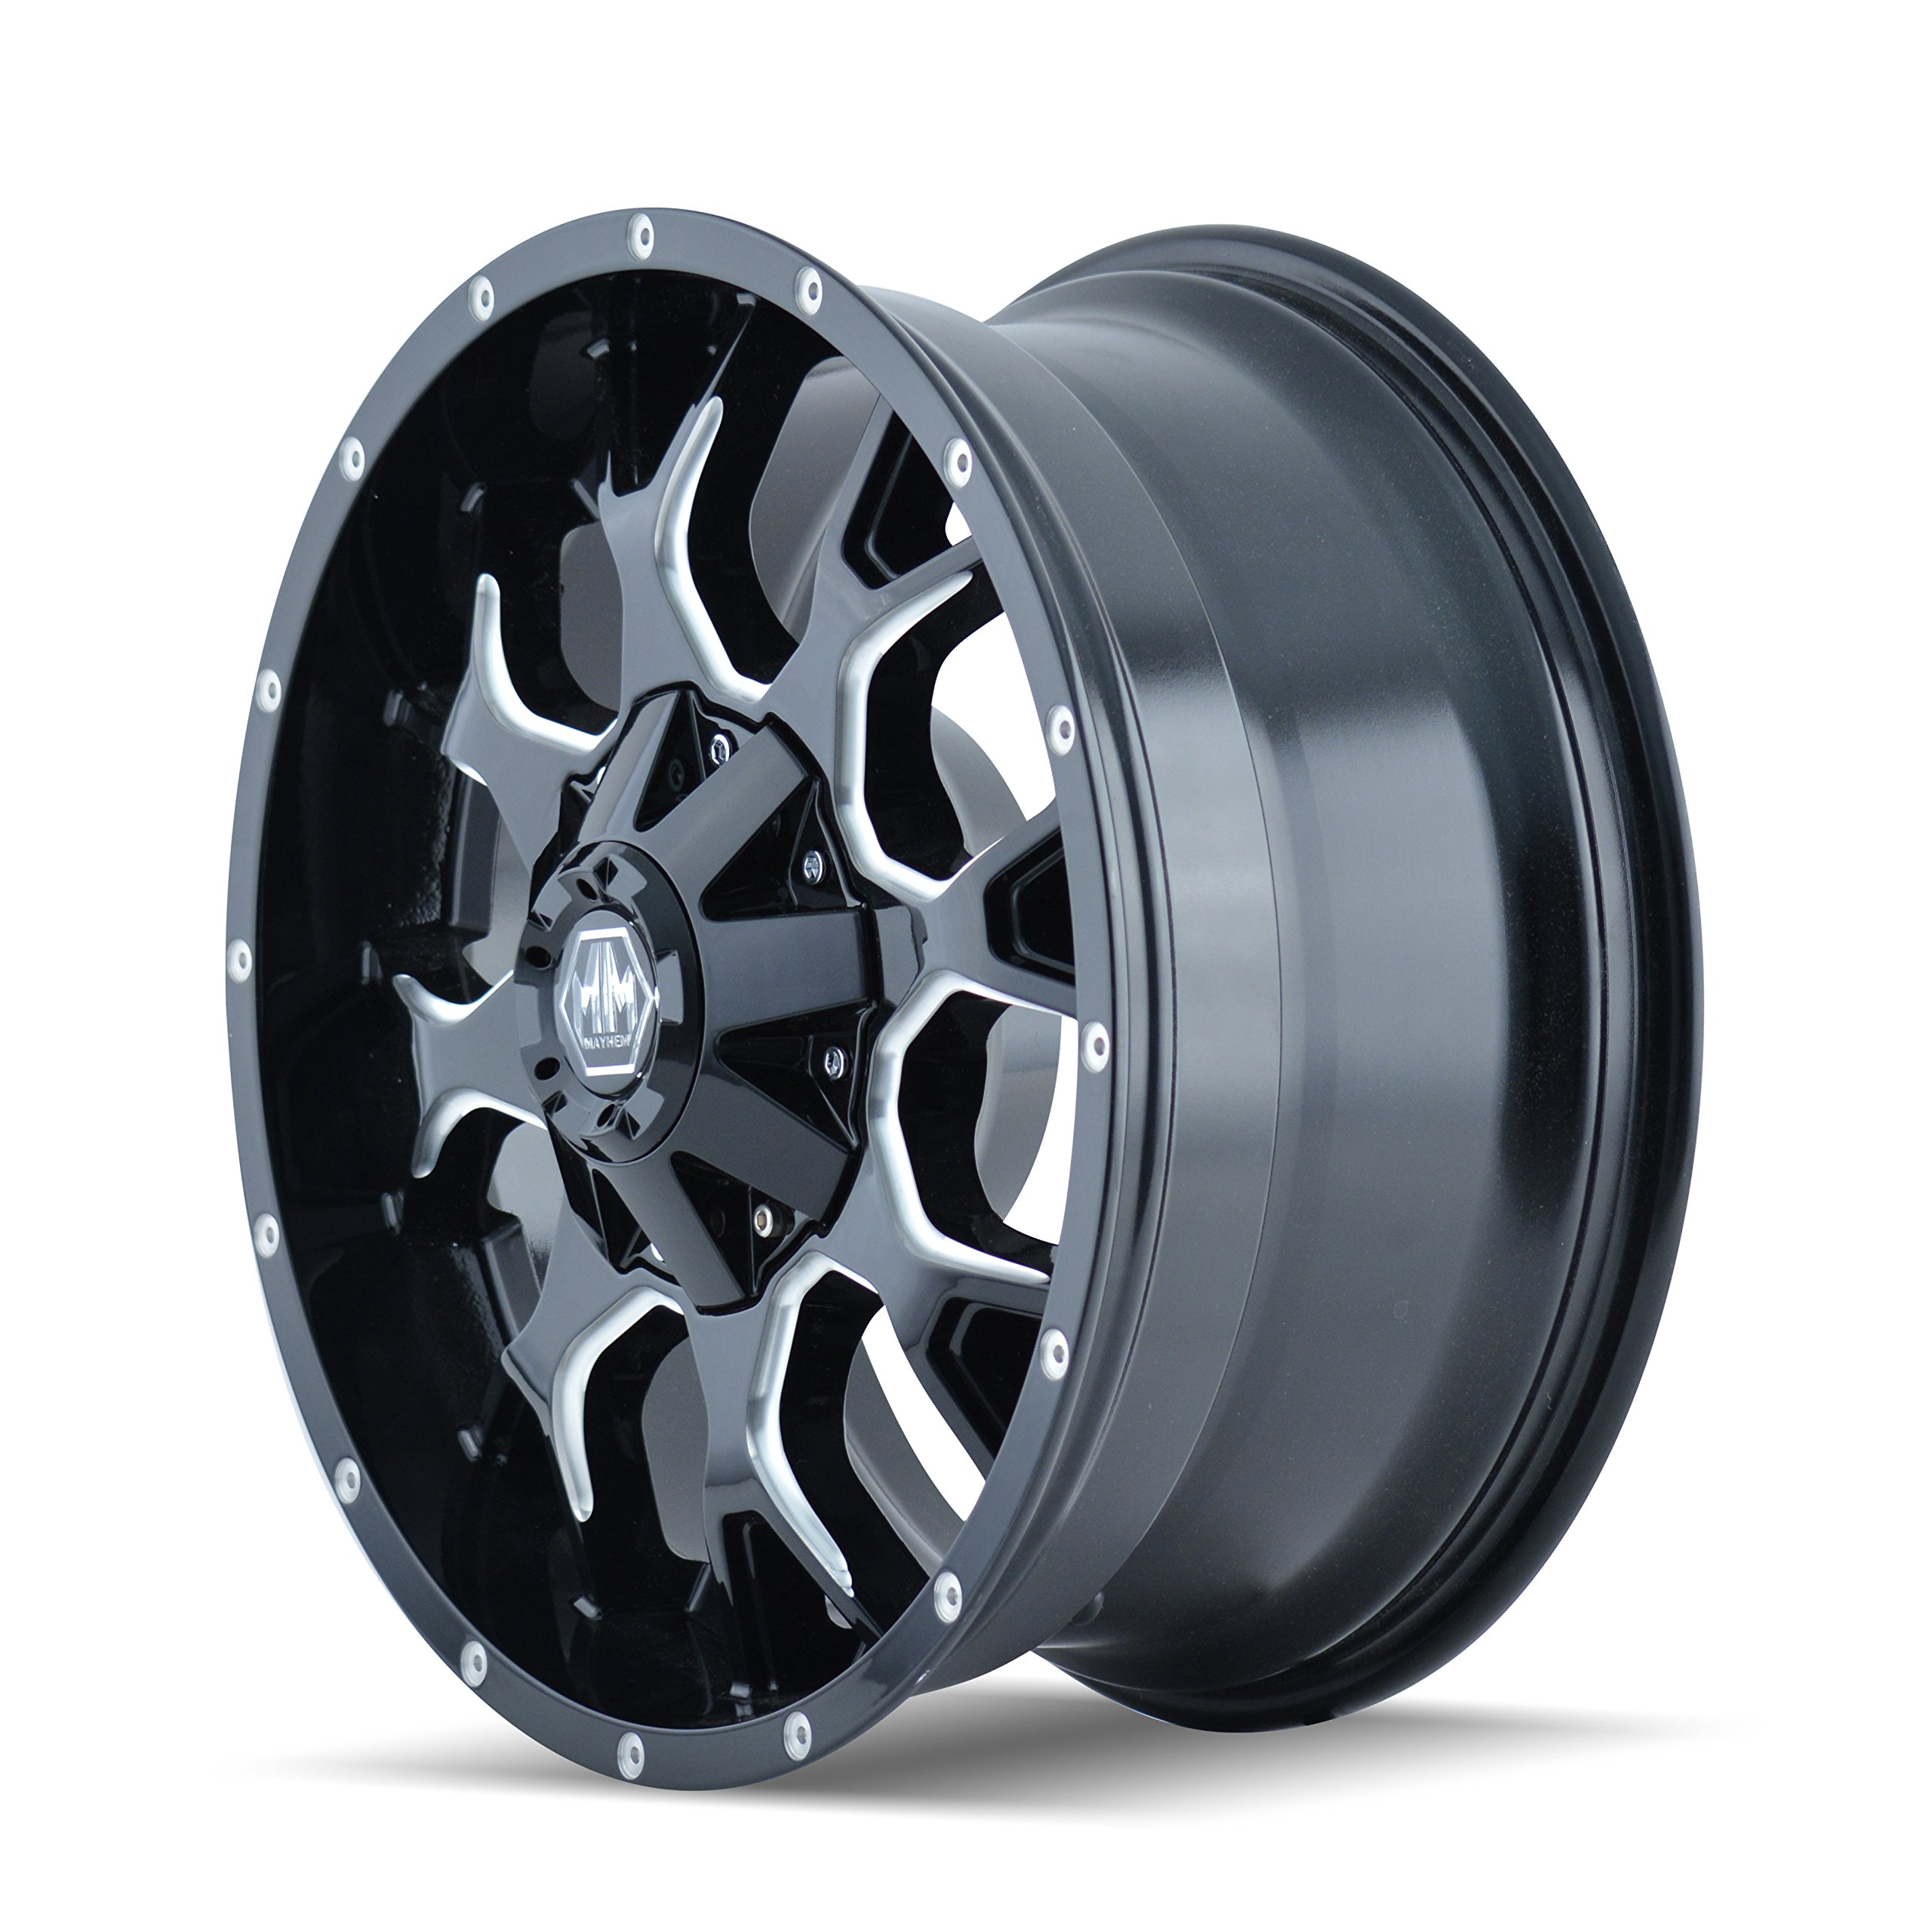 Mayhem Warrior 8015 Black Wheel with Milled Spokes (20x9''/16x165.1mm)